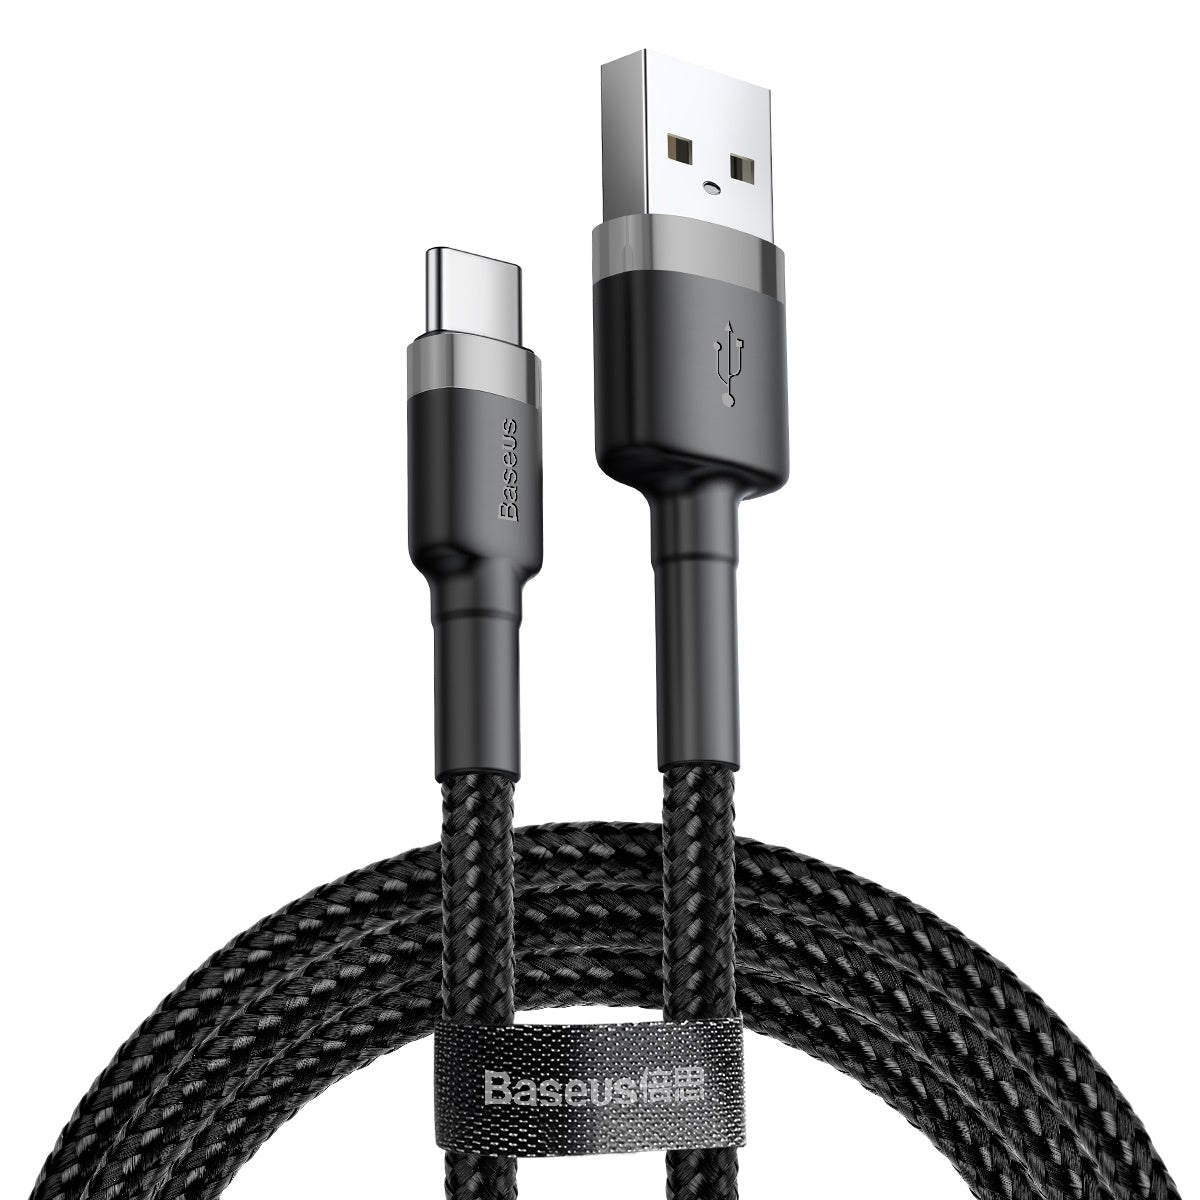 Baseus_Cafule_Type-C_to_USB_Cable_black_1m_S8L3CBHWATOU.JPG